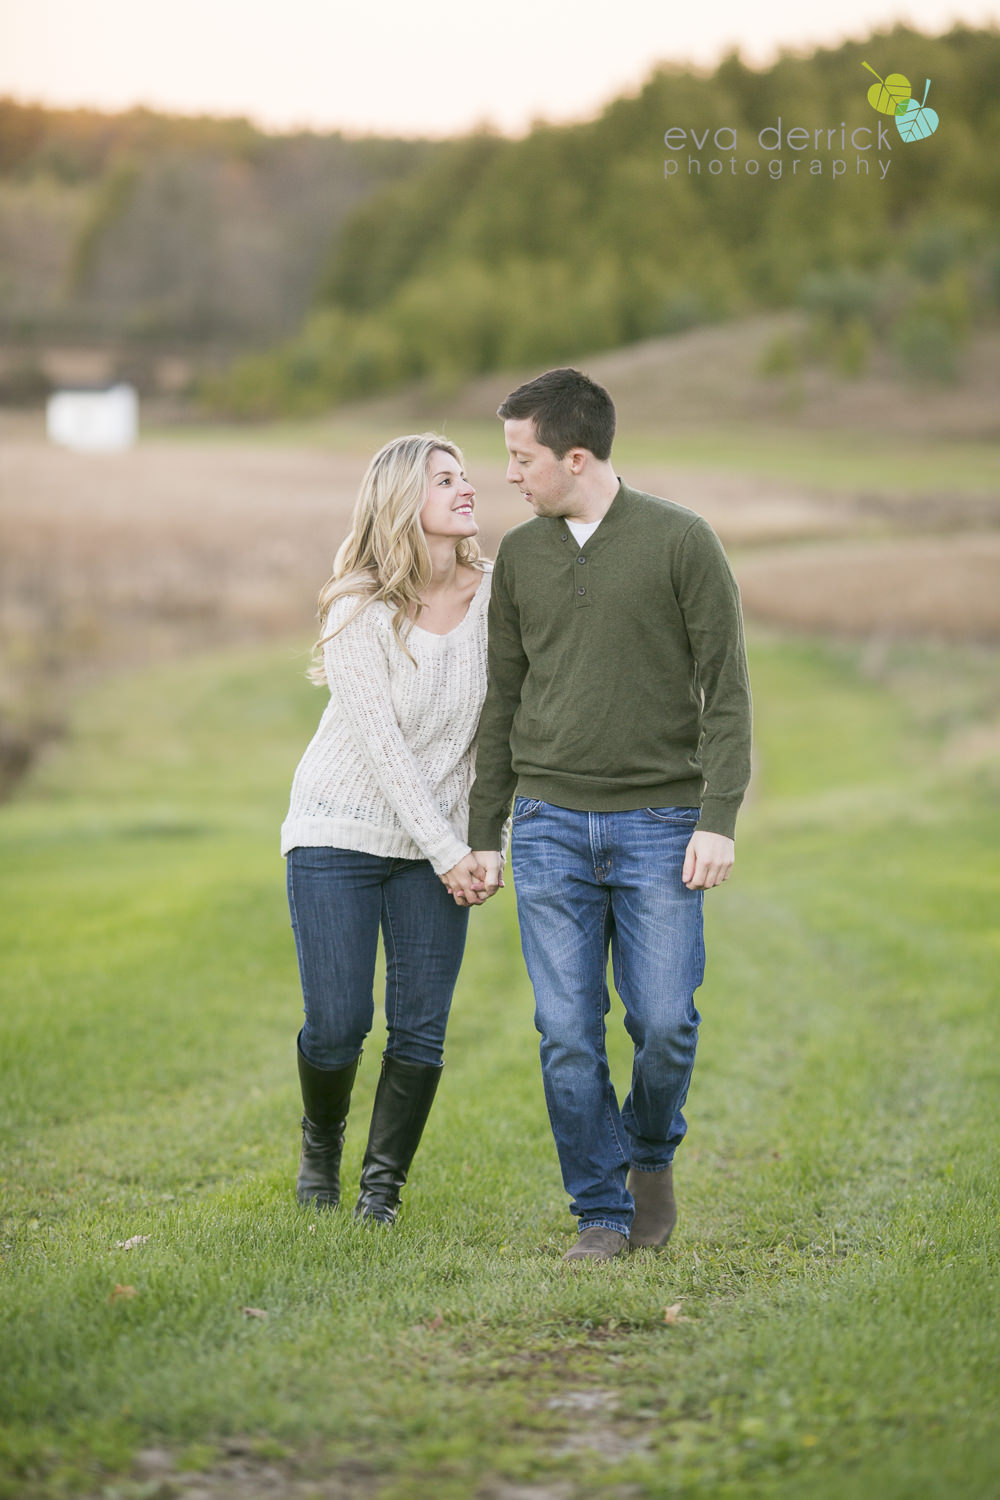 Albion-Hills-Photographer-Engagement-Session-Alanna-Matt-photography-by-Eva-Derrick-Photography-025.JPG